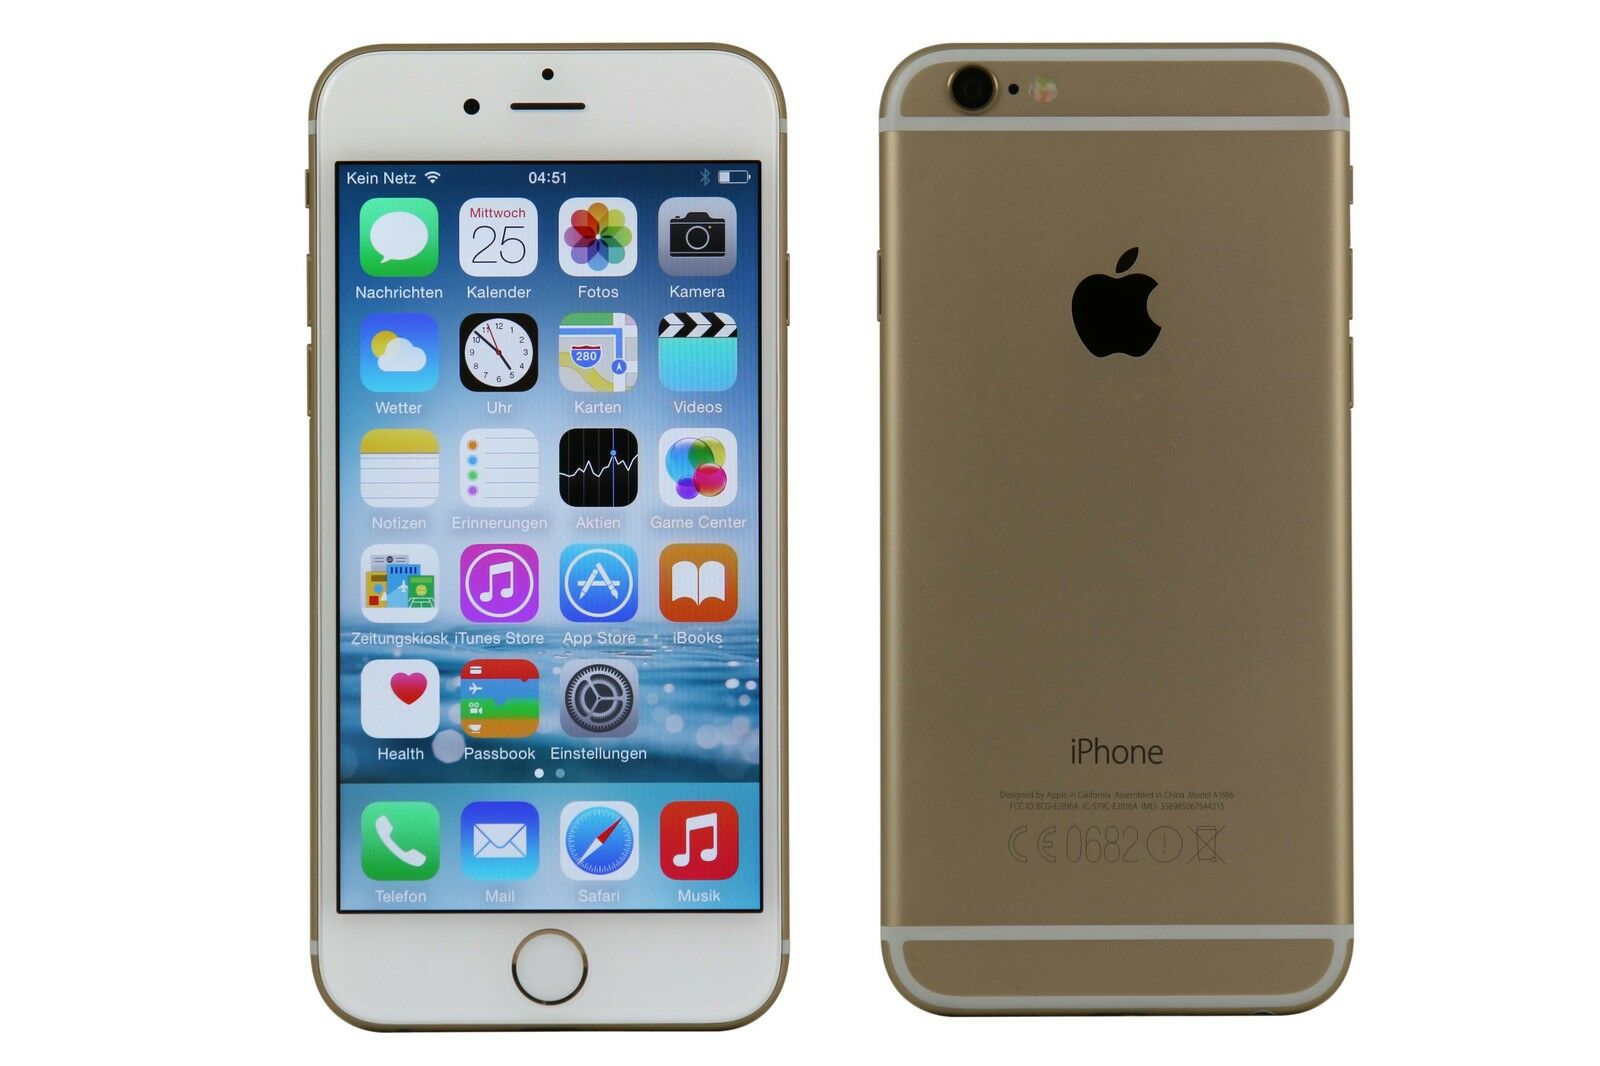 apple iphone 6 16 gb gold ohne simlock guter zustand. Black Bedroom Furniture Sets. Home Design Ideas